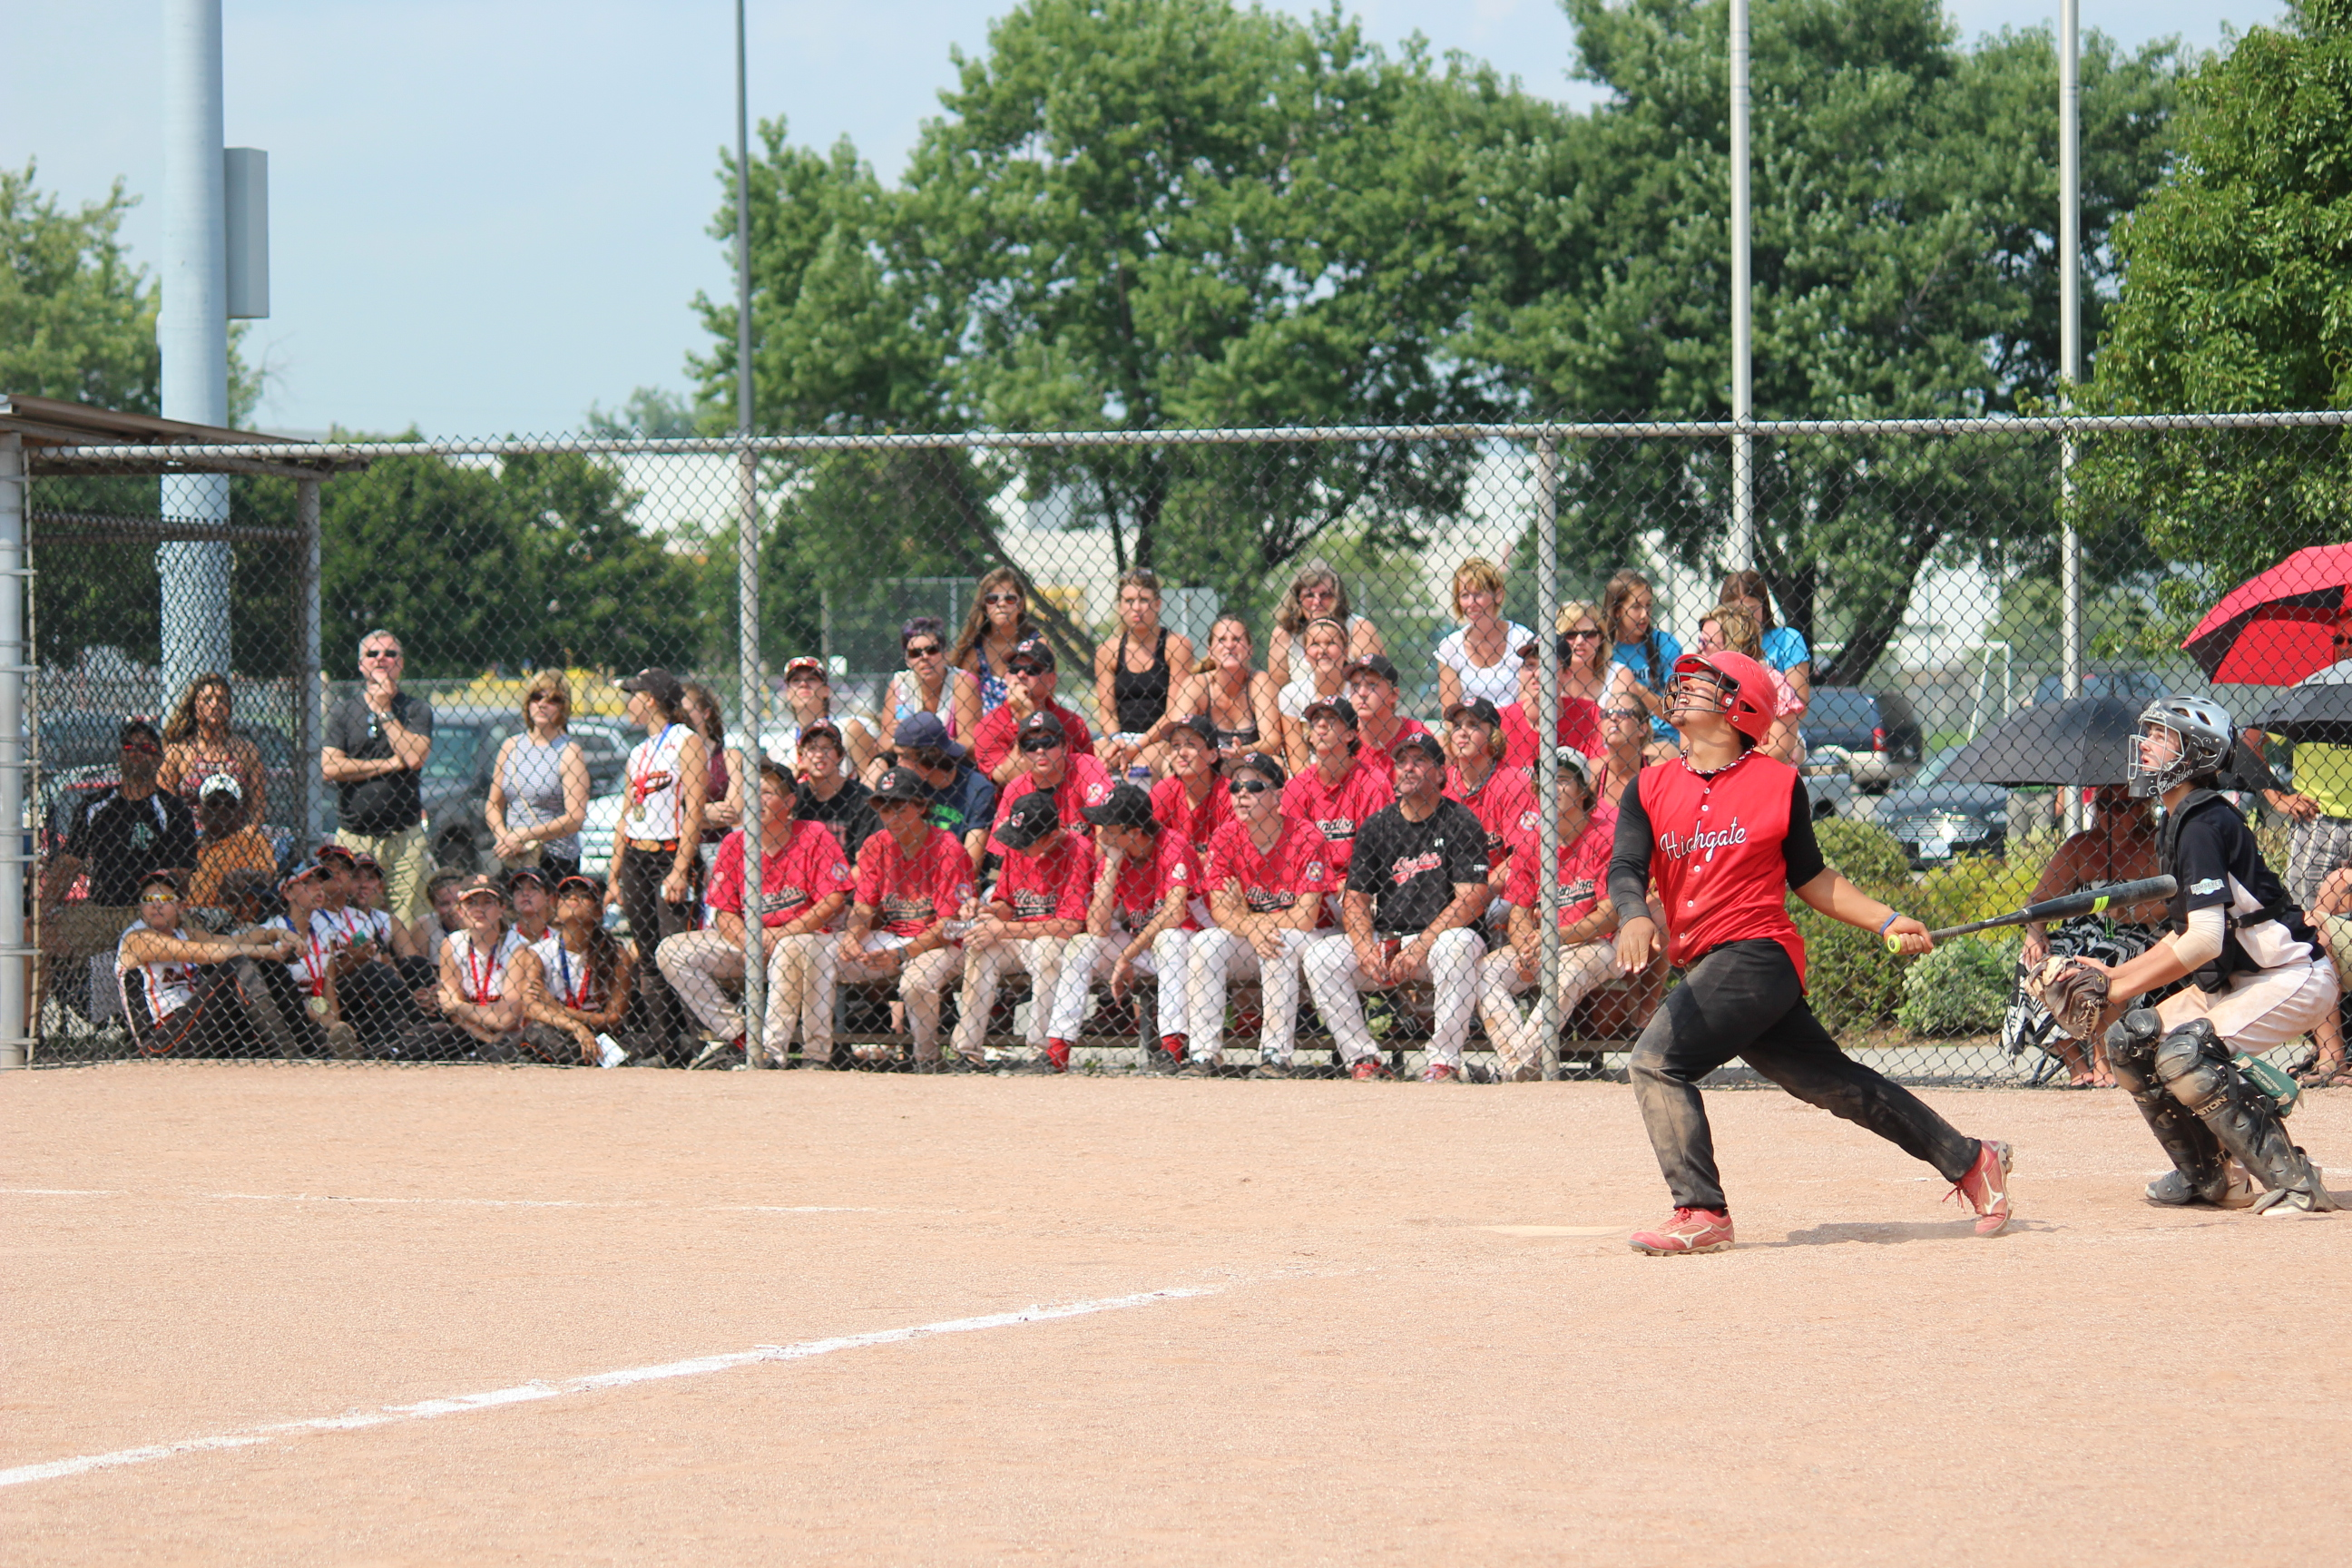 The Ontario Summer Games were held in Windsor from August 7-10, 2014. Photo taken August 10, 2014. (Photo by Ricardo Veneza)